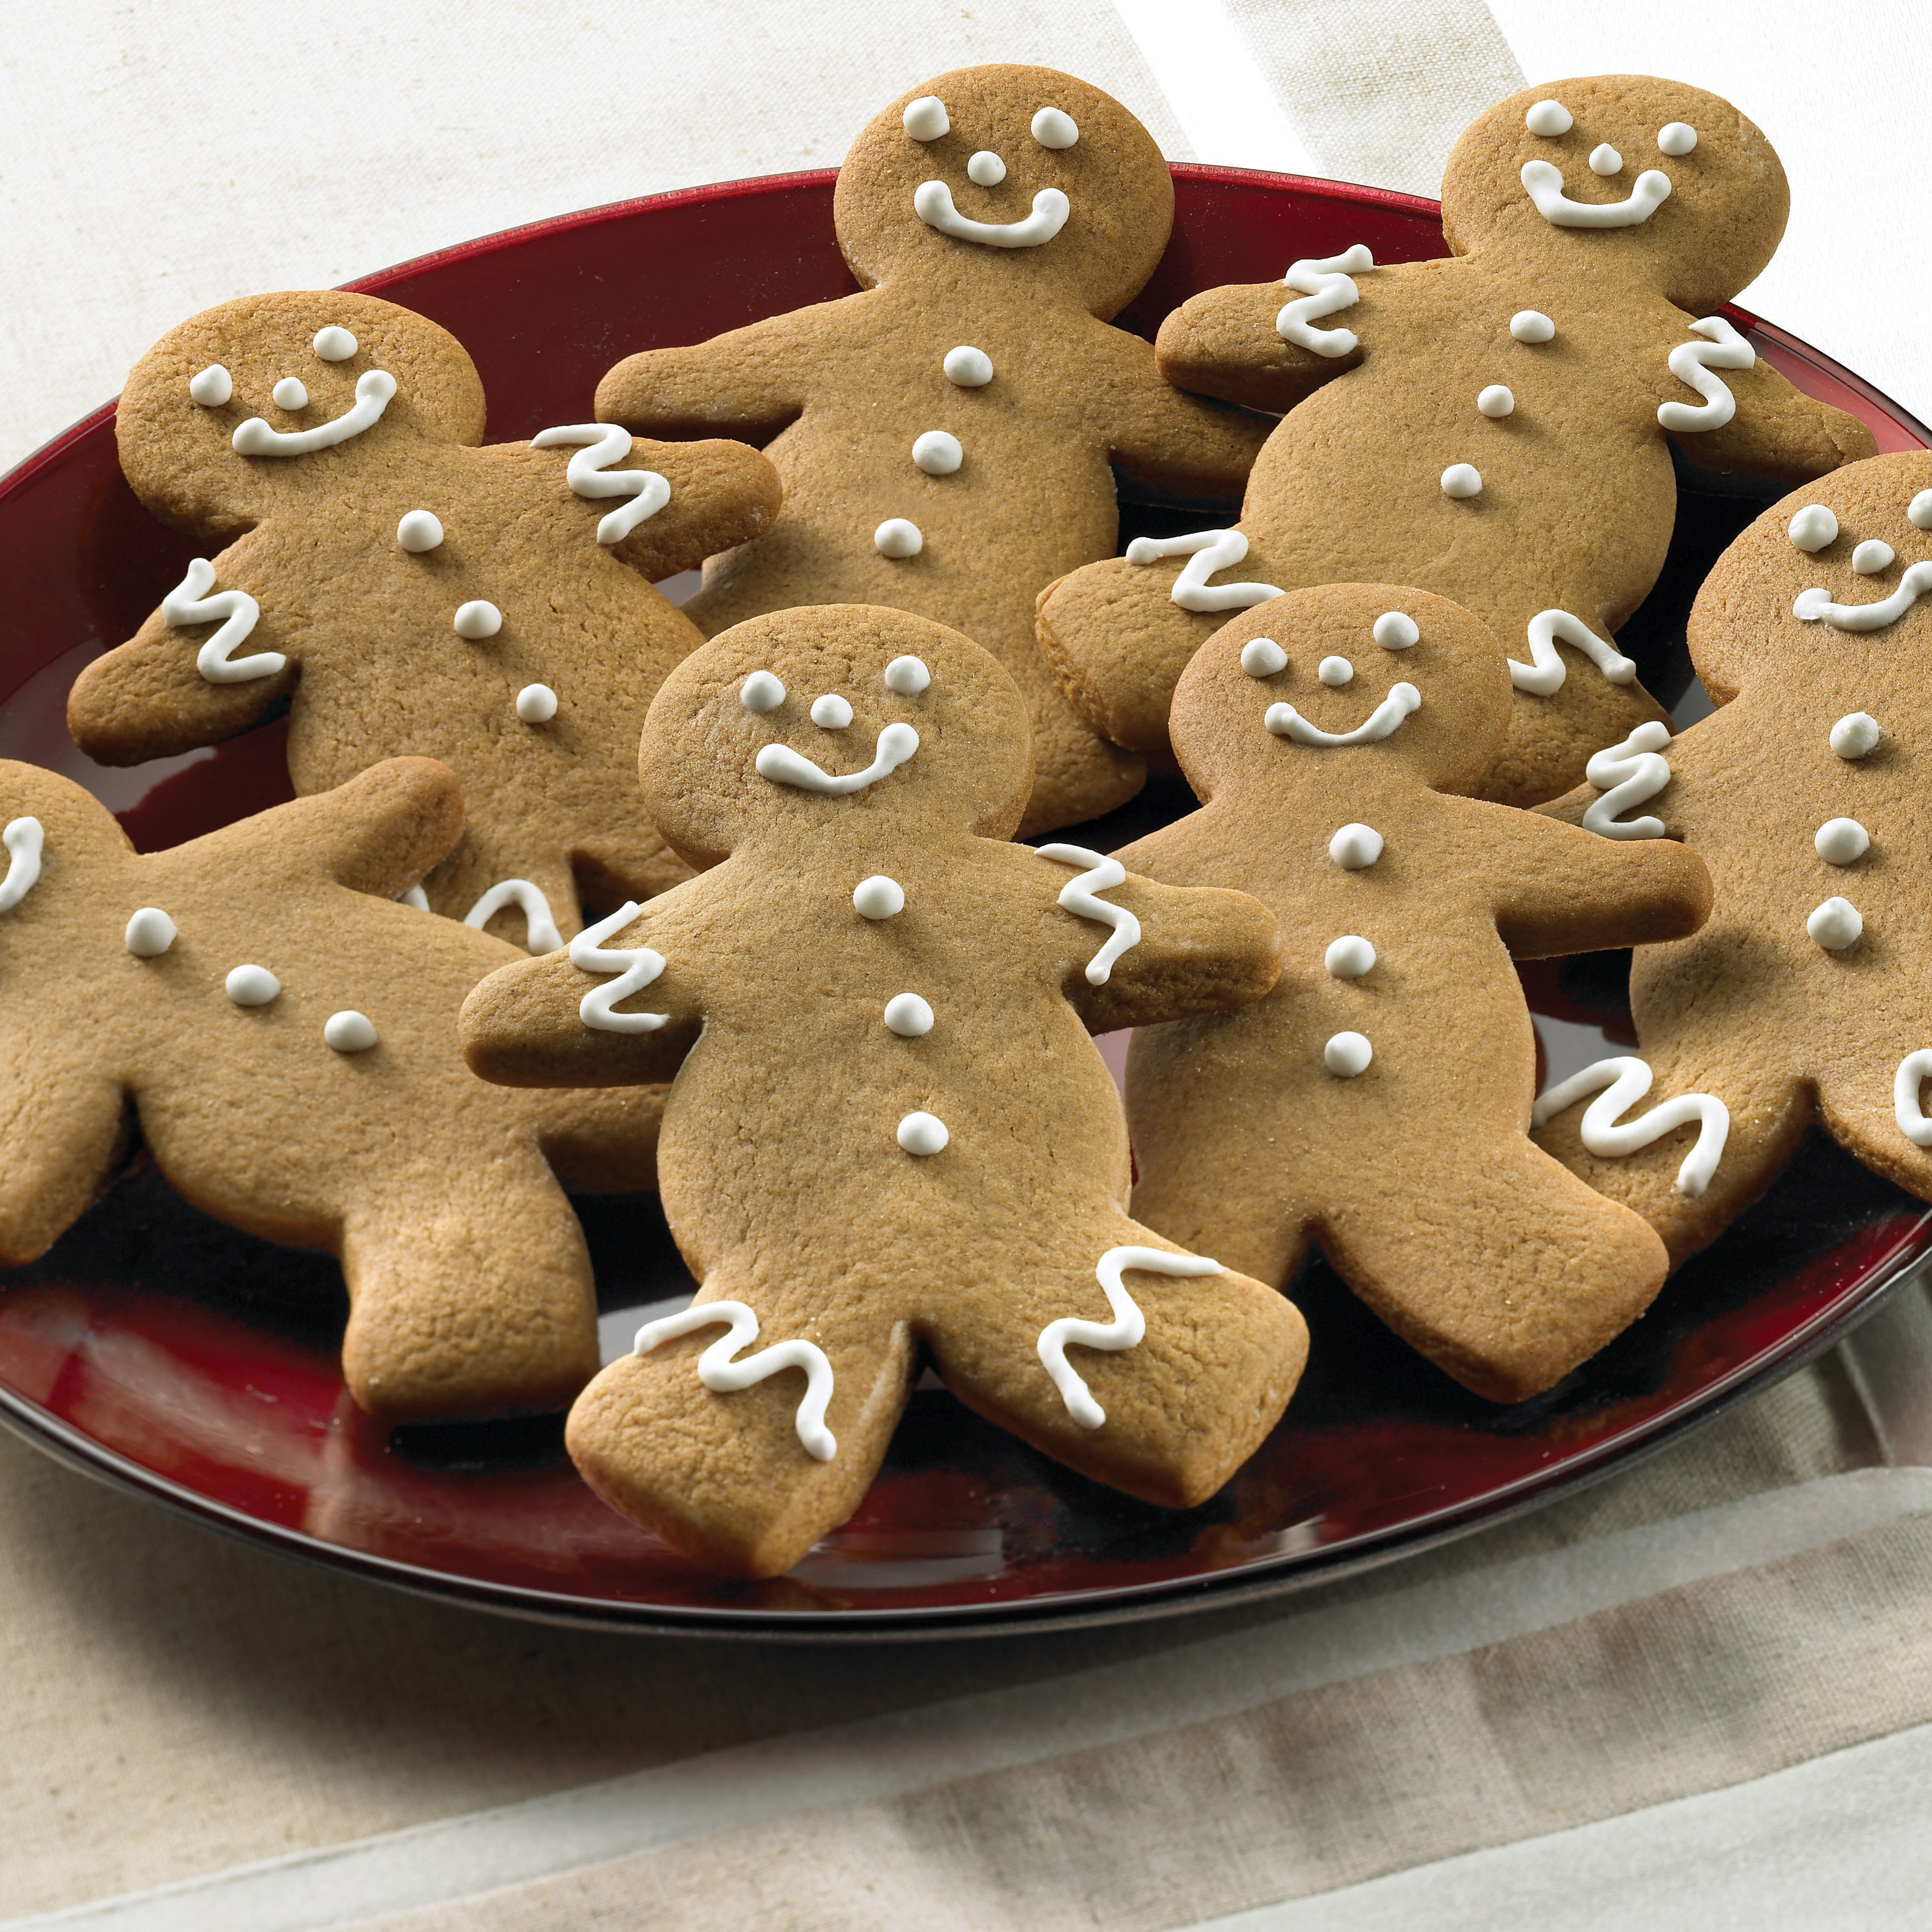 Recipes Course Desserts Cookies and Bars Gingerbread Men Cookies